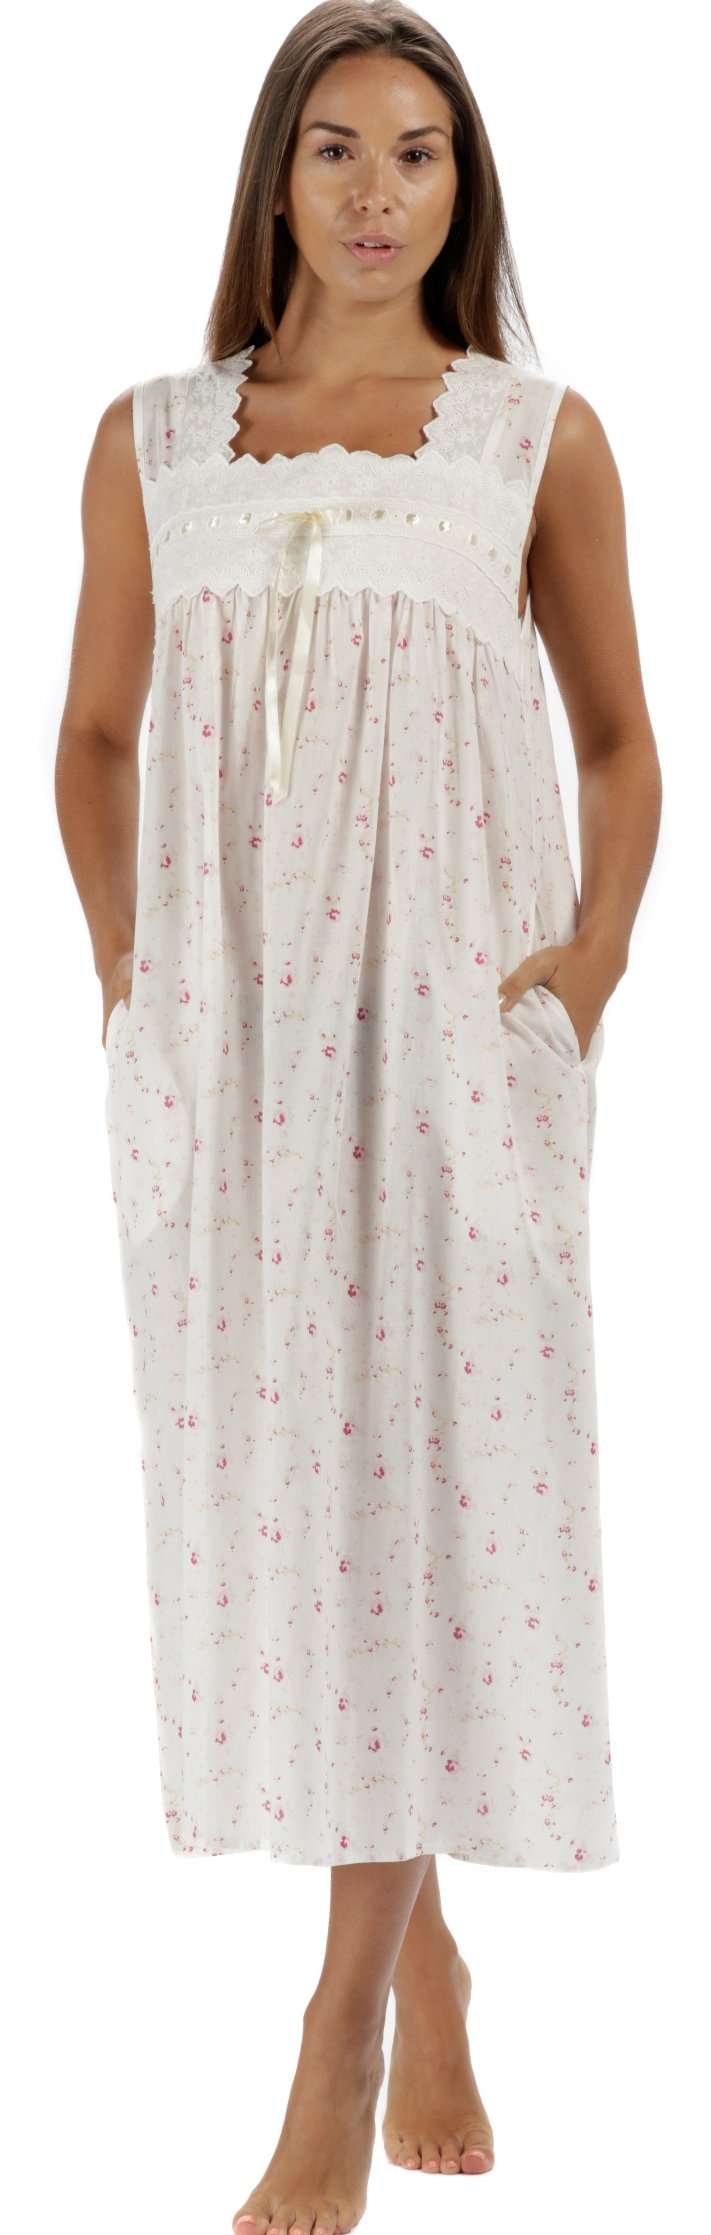 The 1 for U Laura Sleeveless Nightgown 100% Cotton Womens Nightie (XL, Vintage Rose)